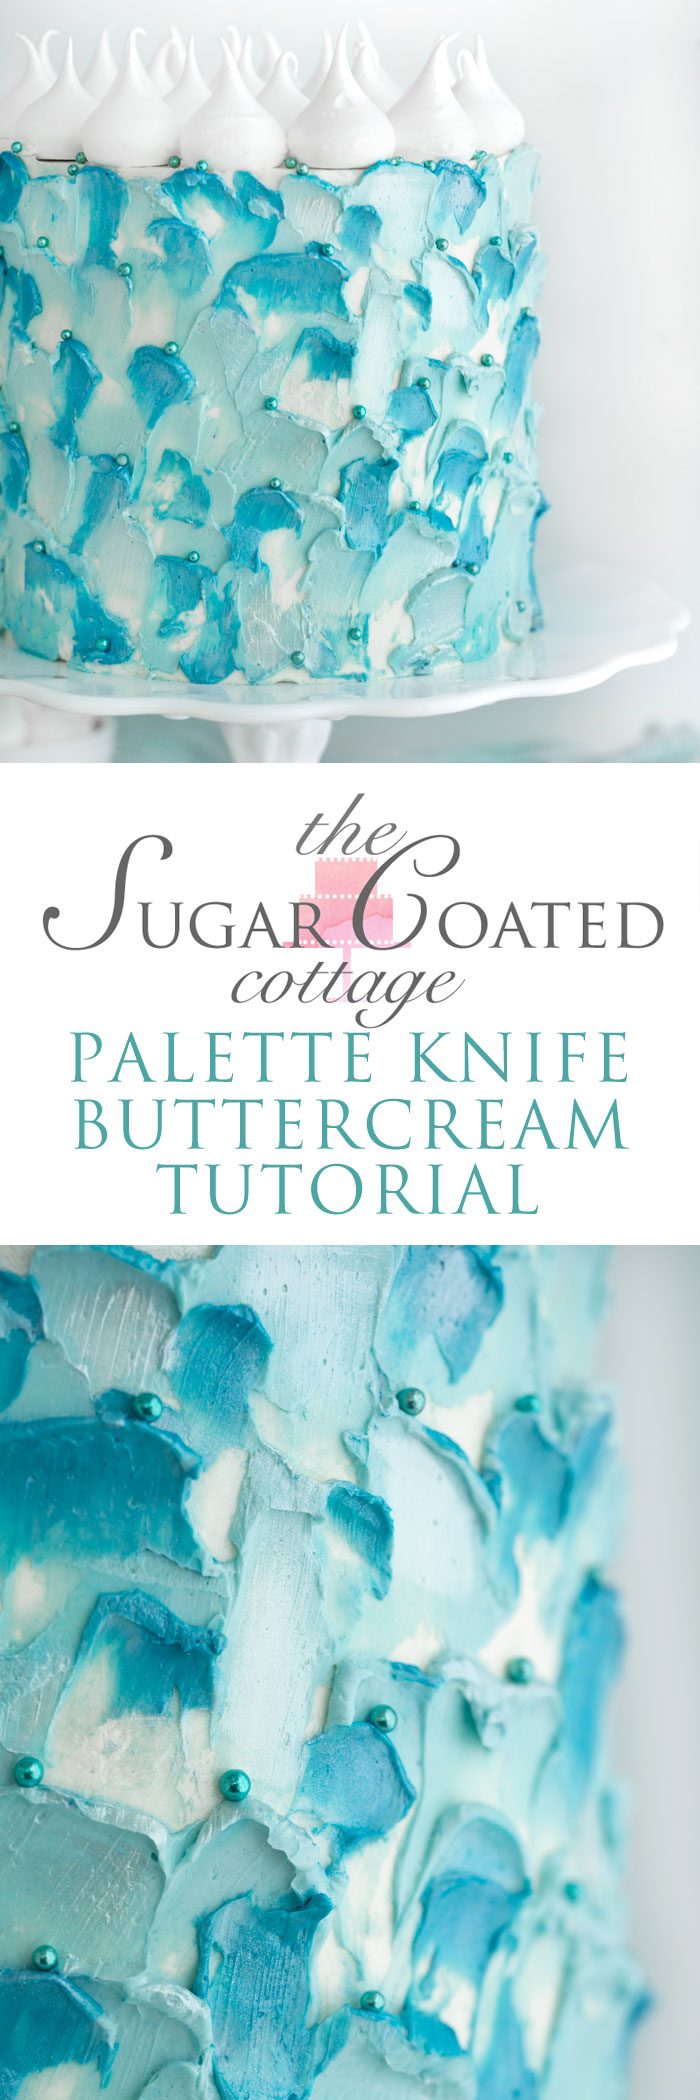 Palette Knife Buttercream Tutorial. Wondering how you can achieve these pretty swoops and shimmery detail? I'll show you how. #cakedecorating #buttercream